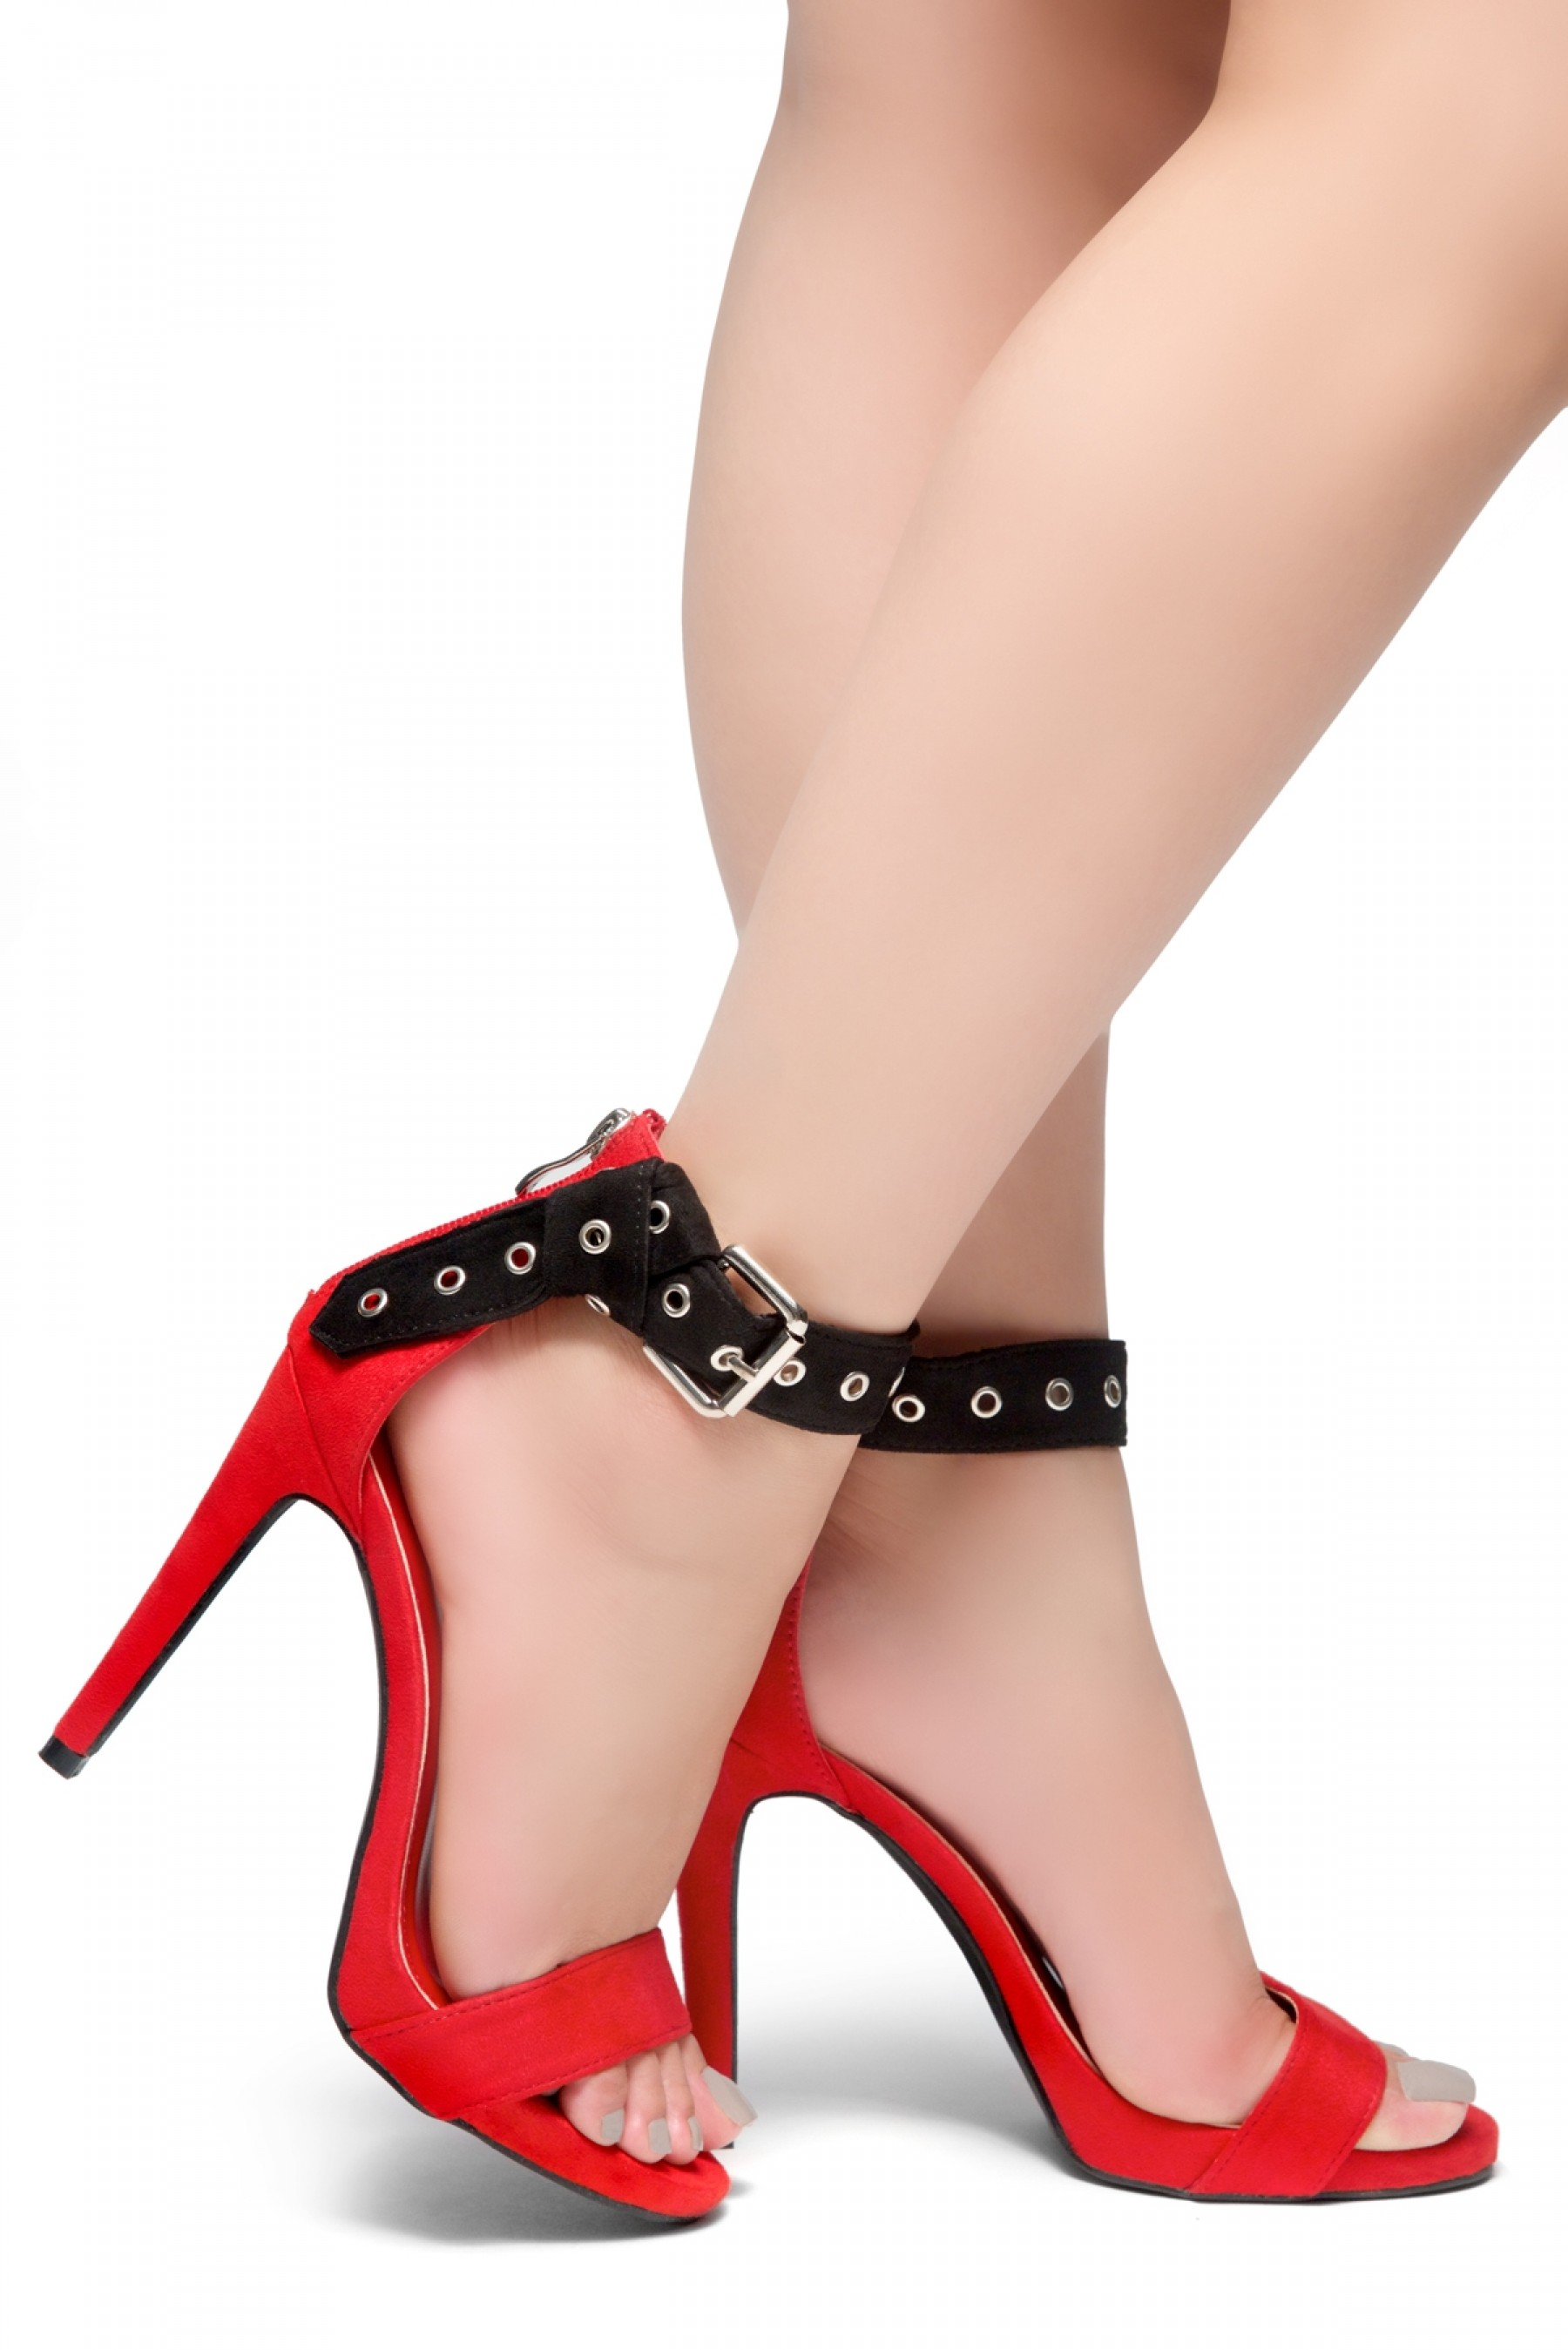 HerStyle Suger Sweet-Stiletto Heel, Ankle Strap Buckle Details Back Zipper Sandals (BlackRed)